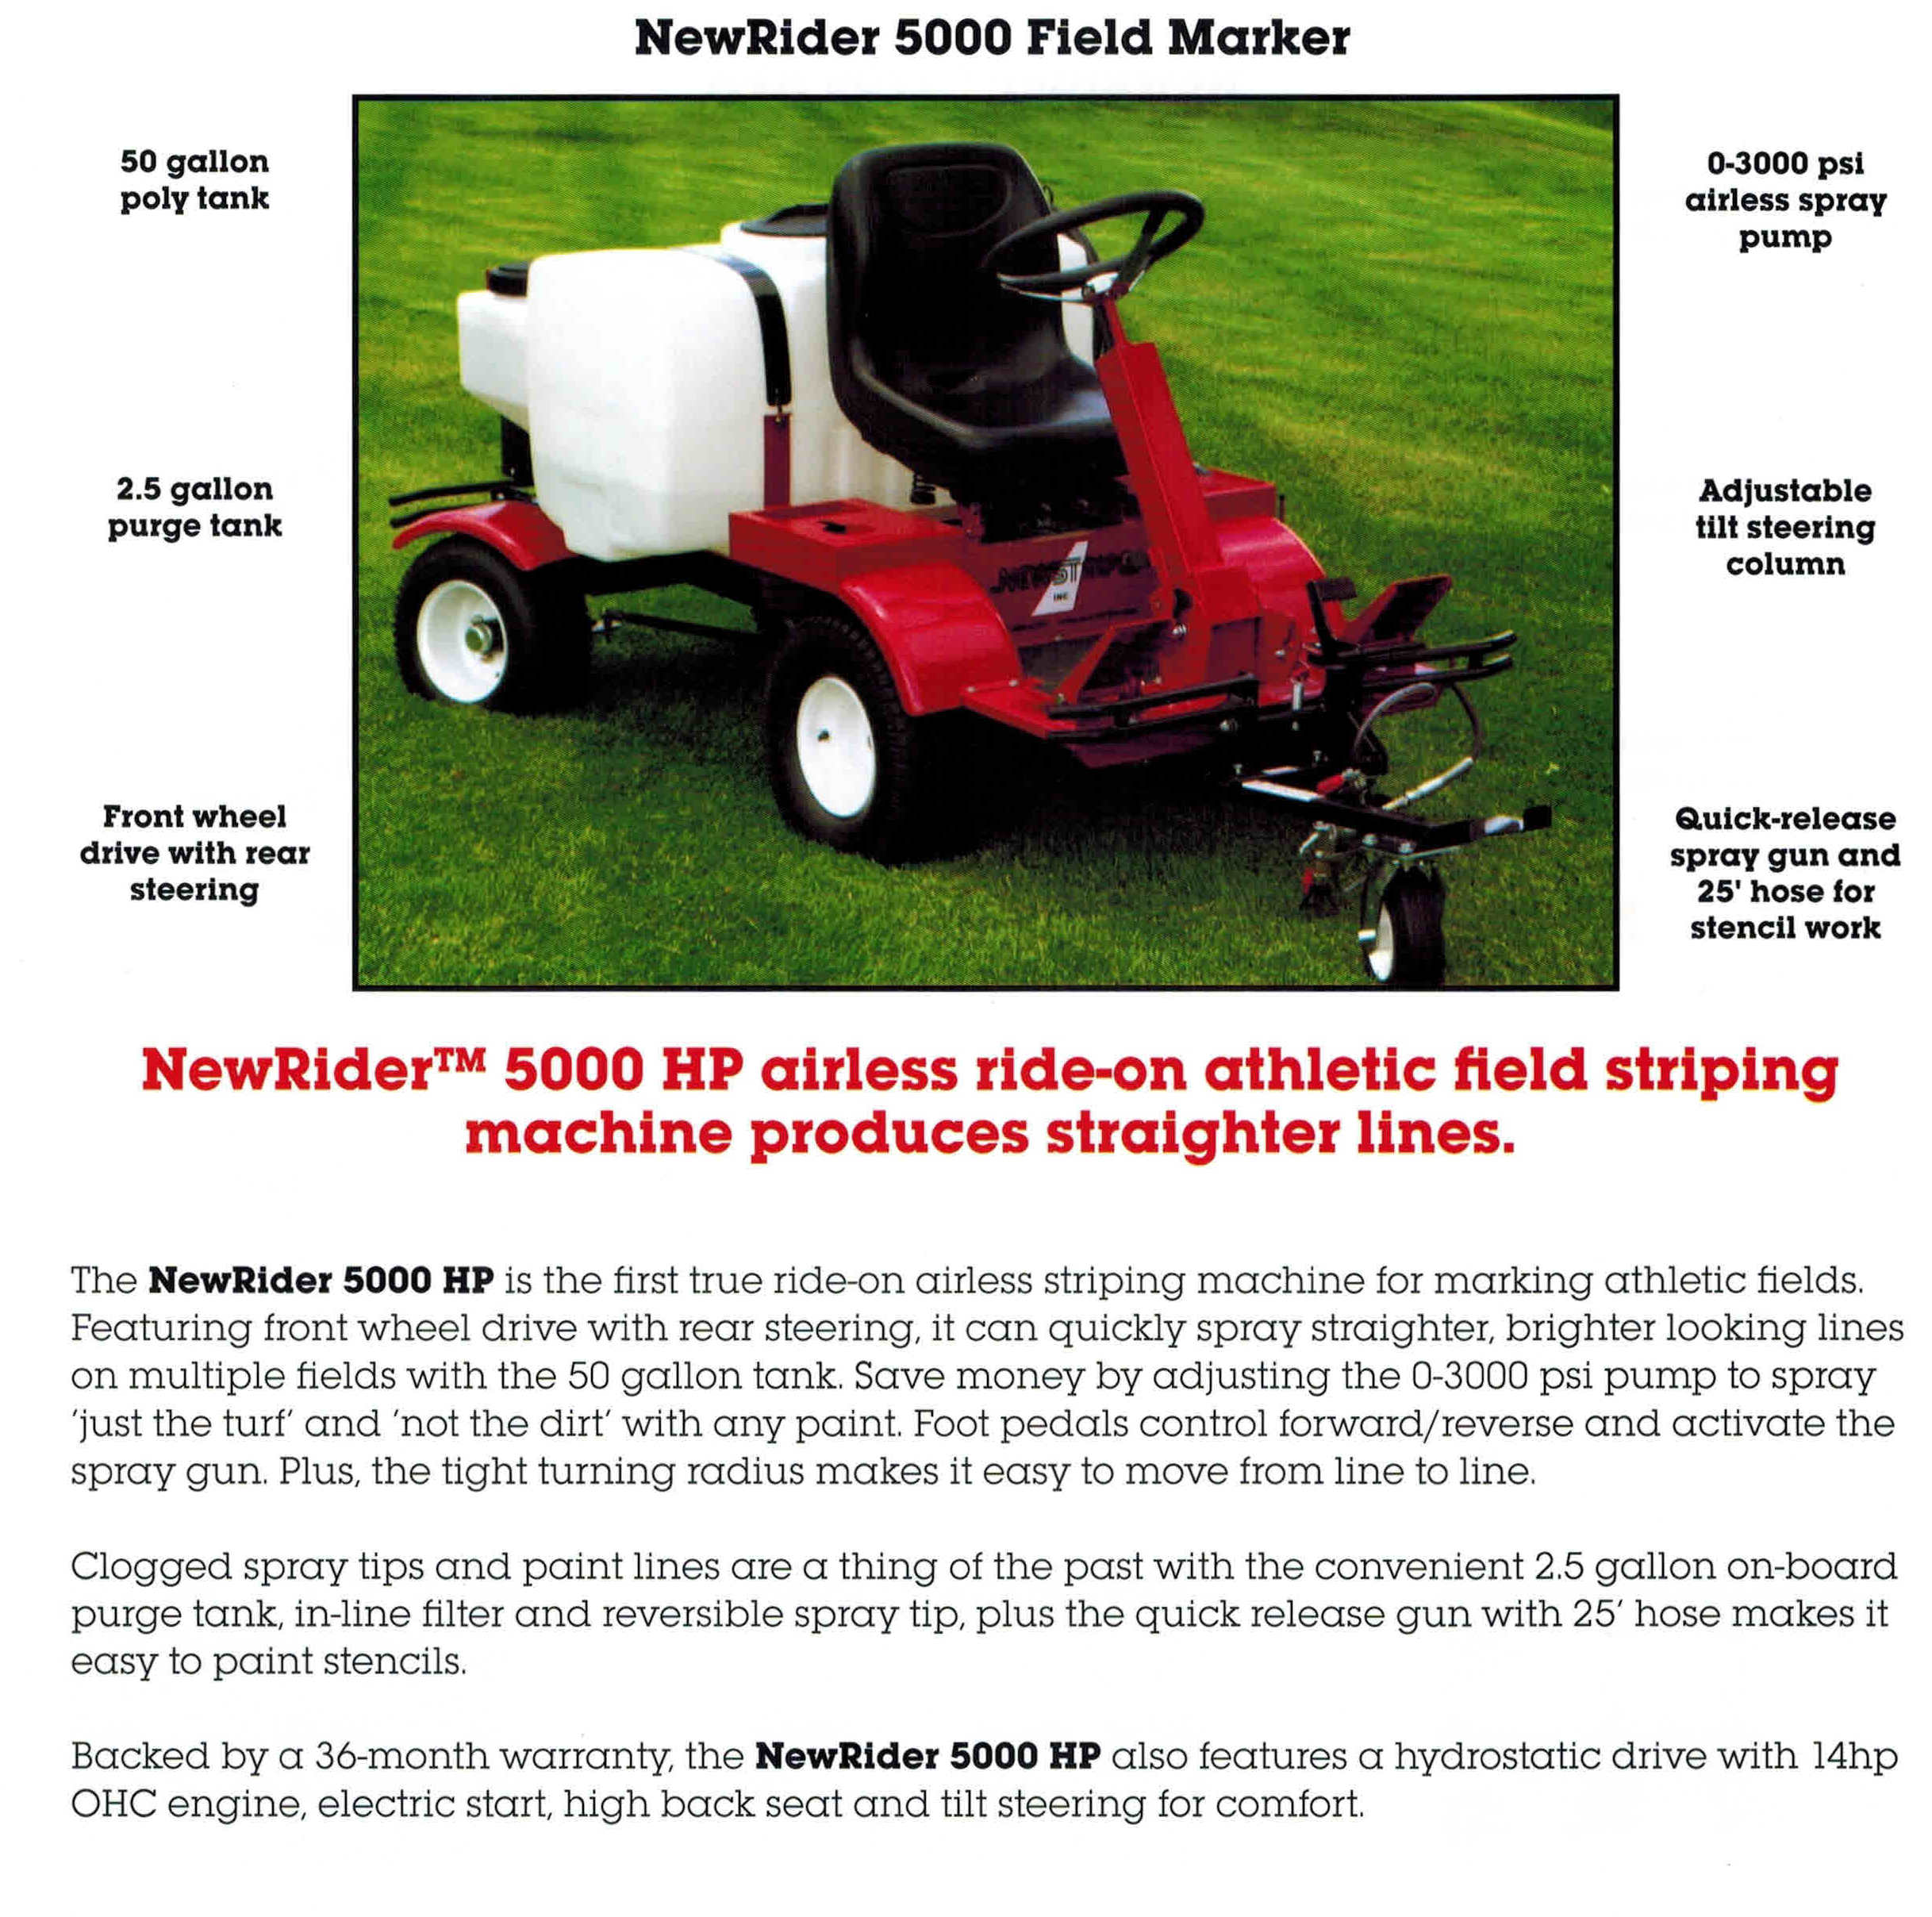 Features NewRider 5000 Ride-On, Self-Propelled Airless Athletic Field Striping Machine